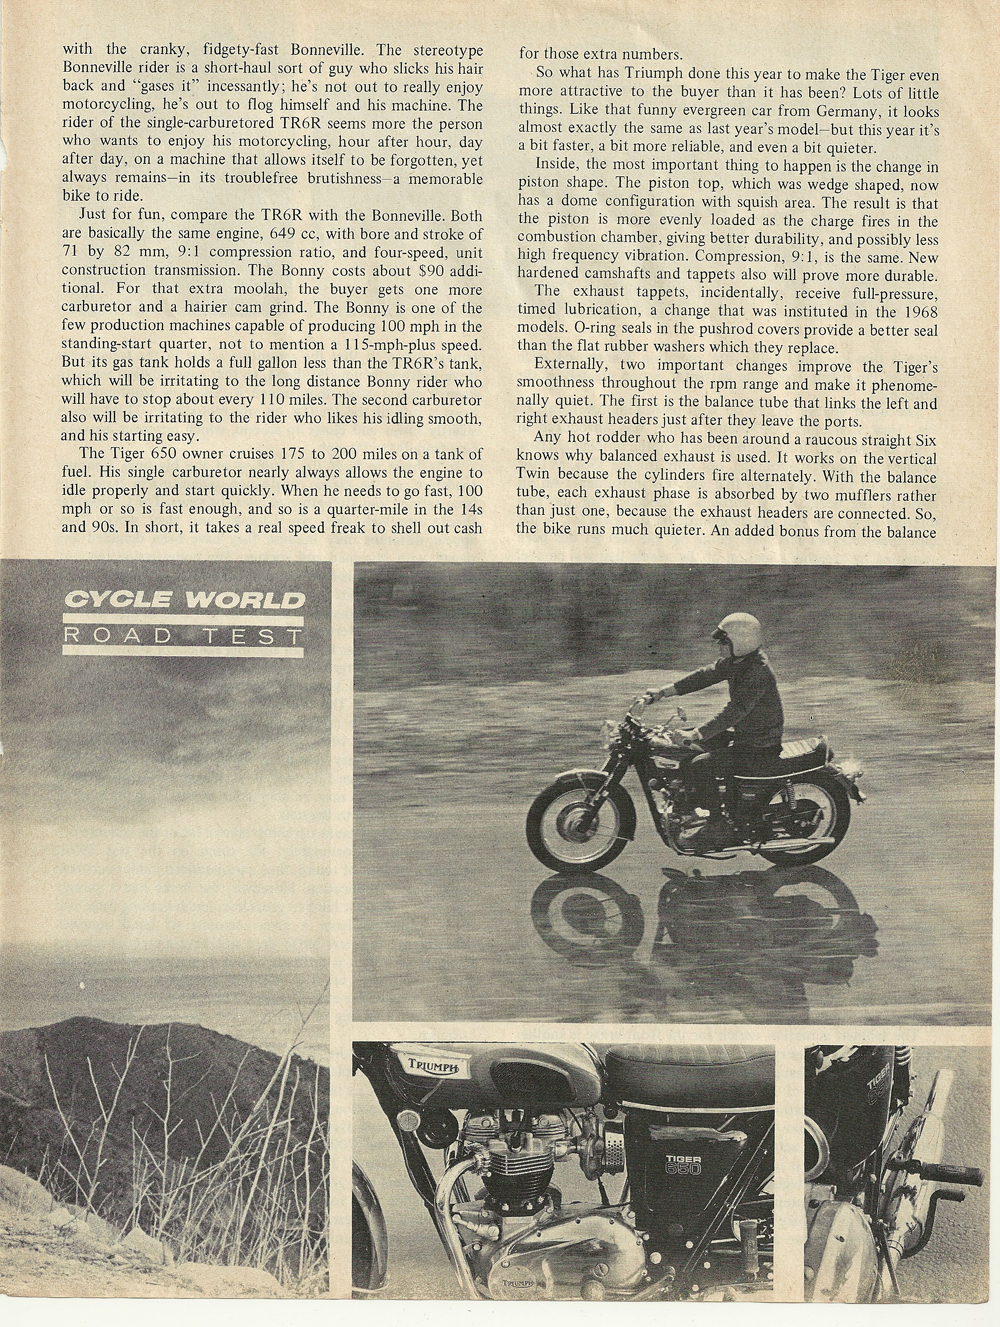 1969 Triumph Tiger 650 road test 2.jpg